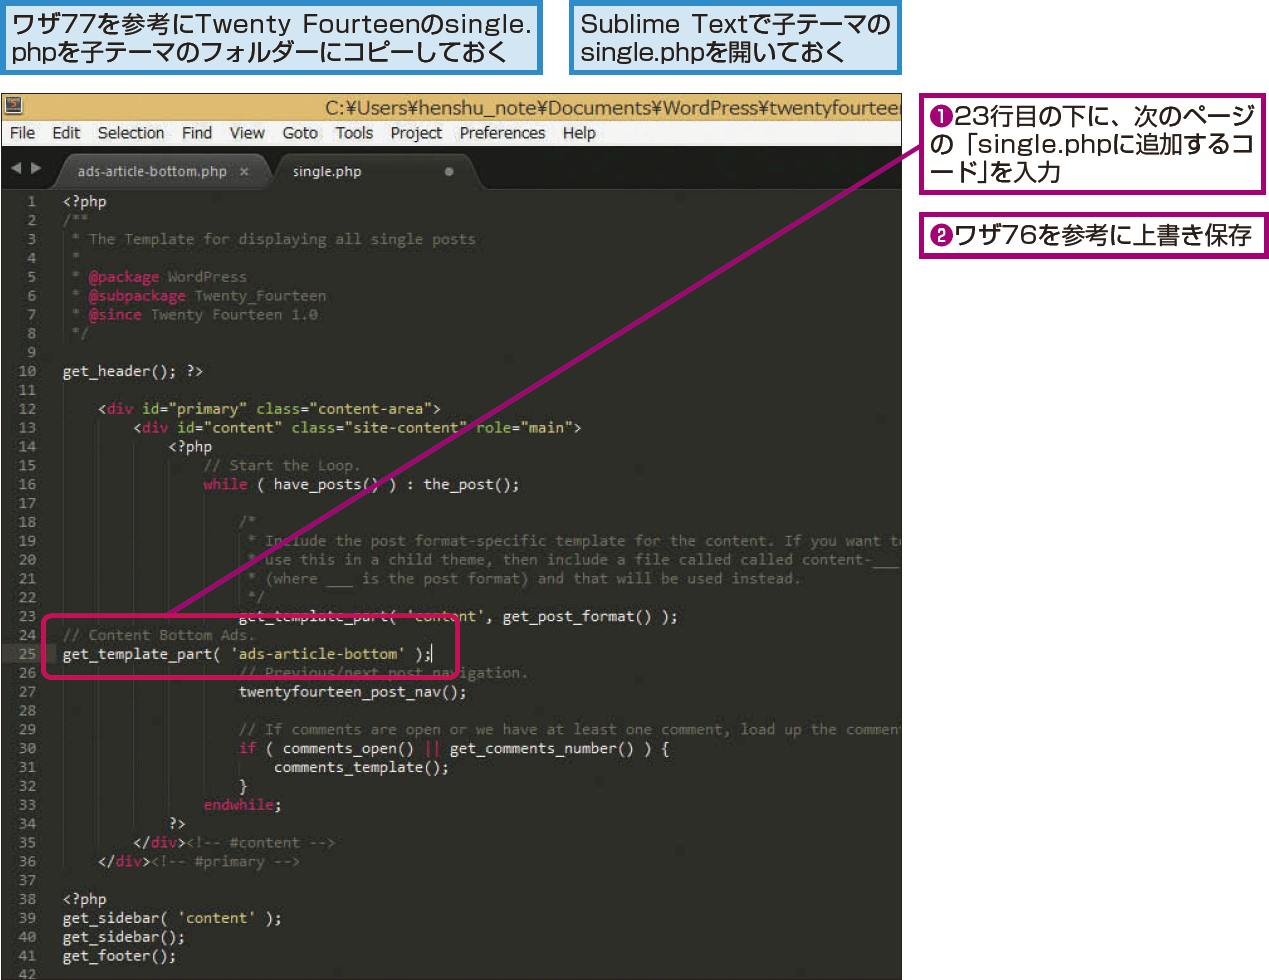 Sublime Textでsingle.phpを編集する